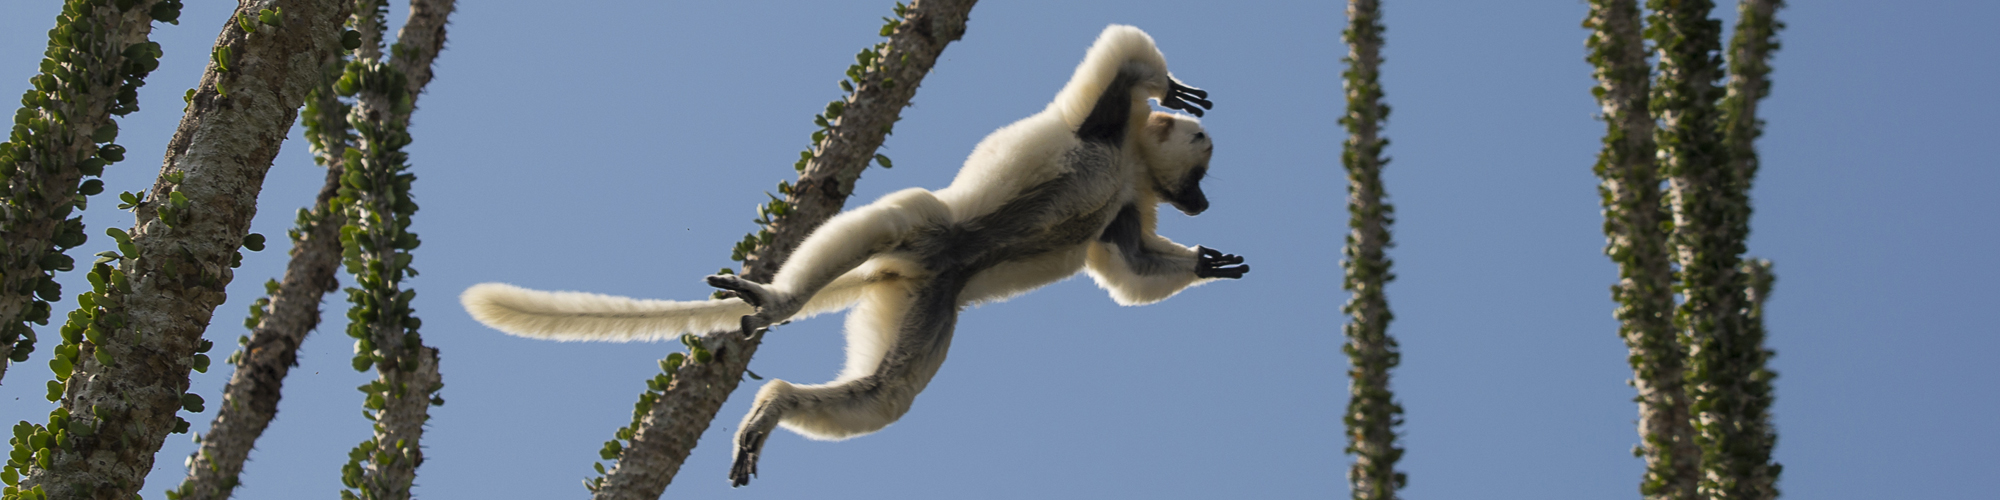 africa reps Mandrare spiny forest sifaka lemur jump resized background